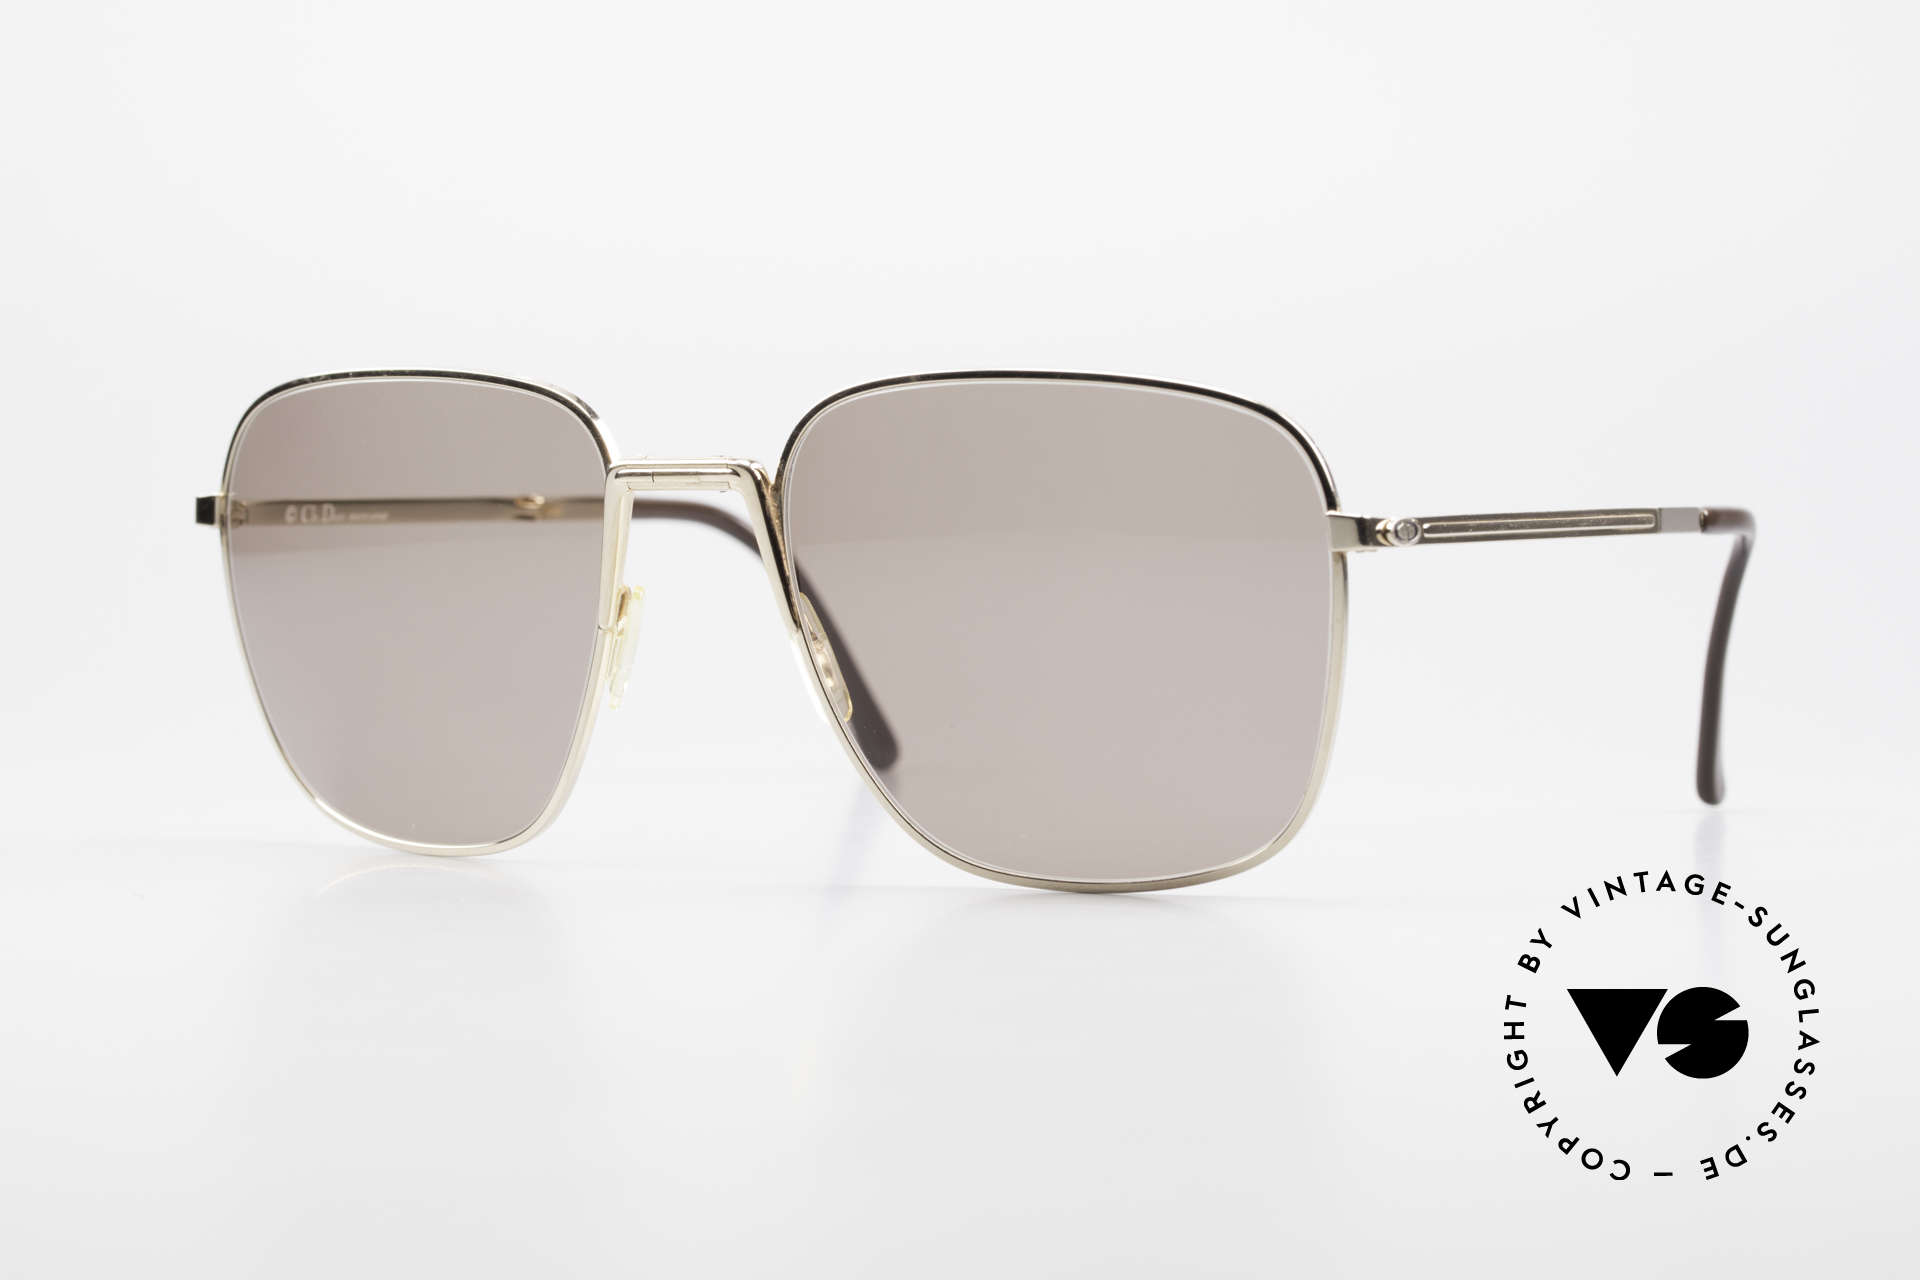 Christian Dior 2287 Monsieur Folding Sunglasses, unique 1980's designer sunglasses by Christian DIOR, Made for Men